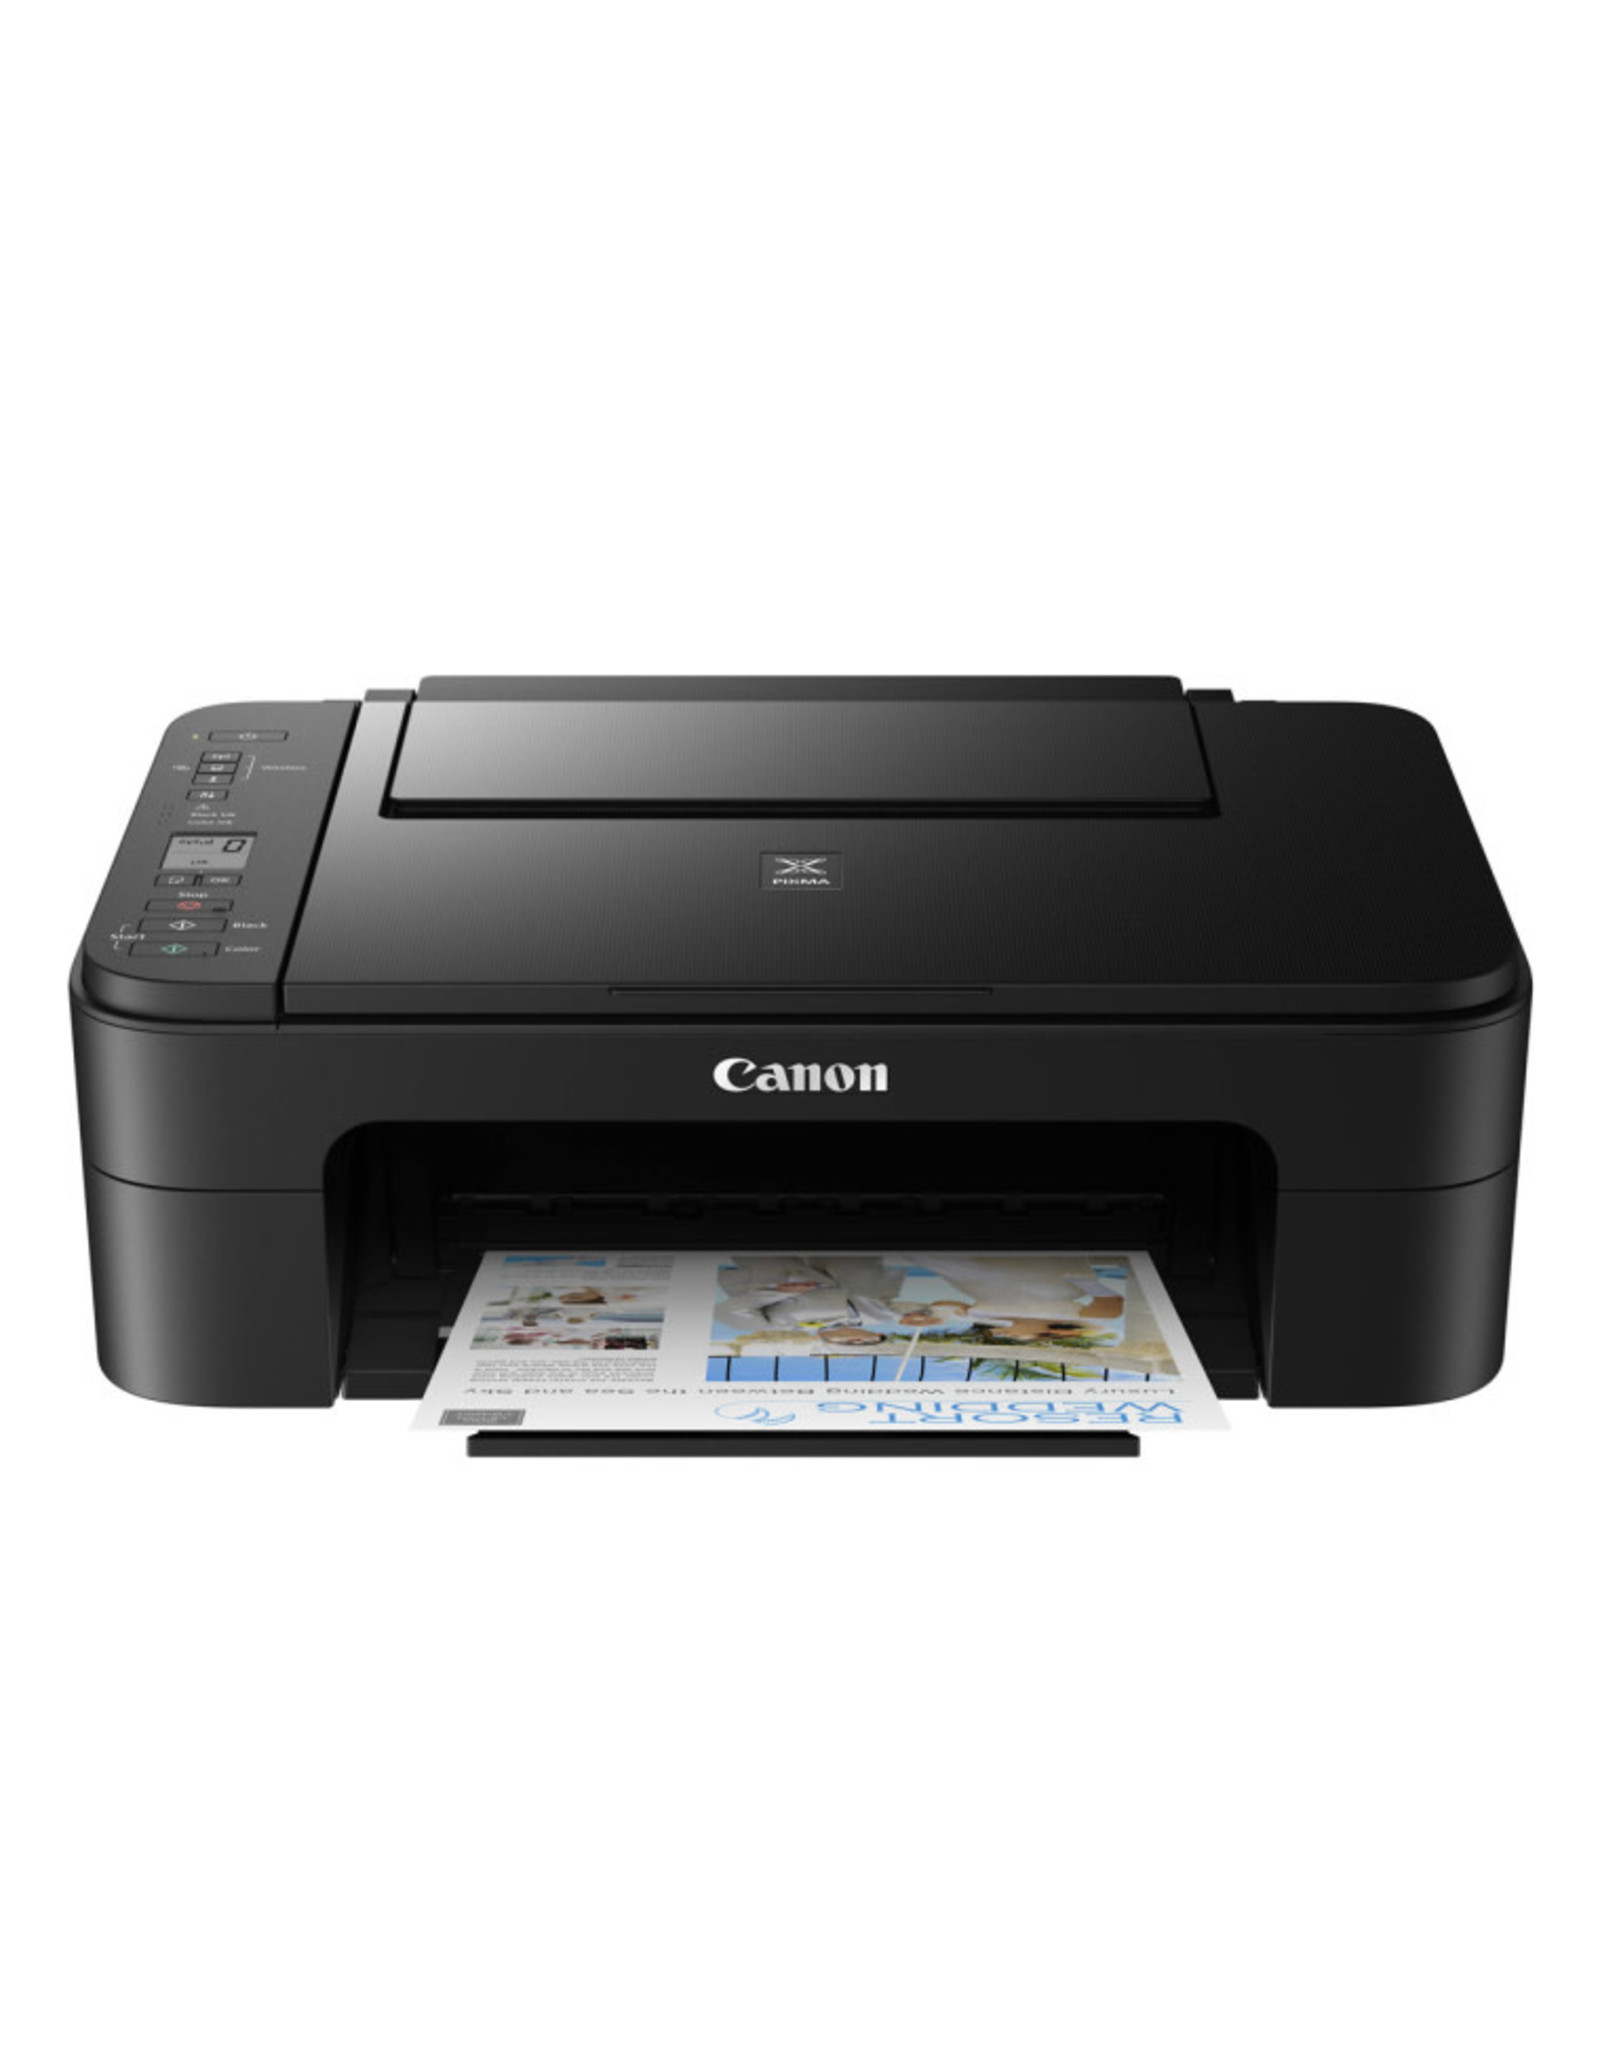 Canon Printer - Canon PIXMA TS3320 Black Wireless Inkjet All-in-One